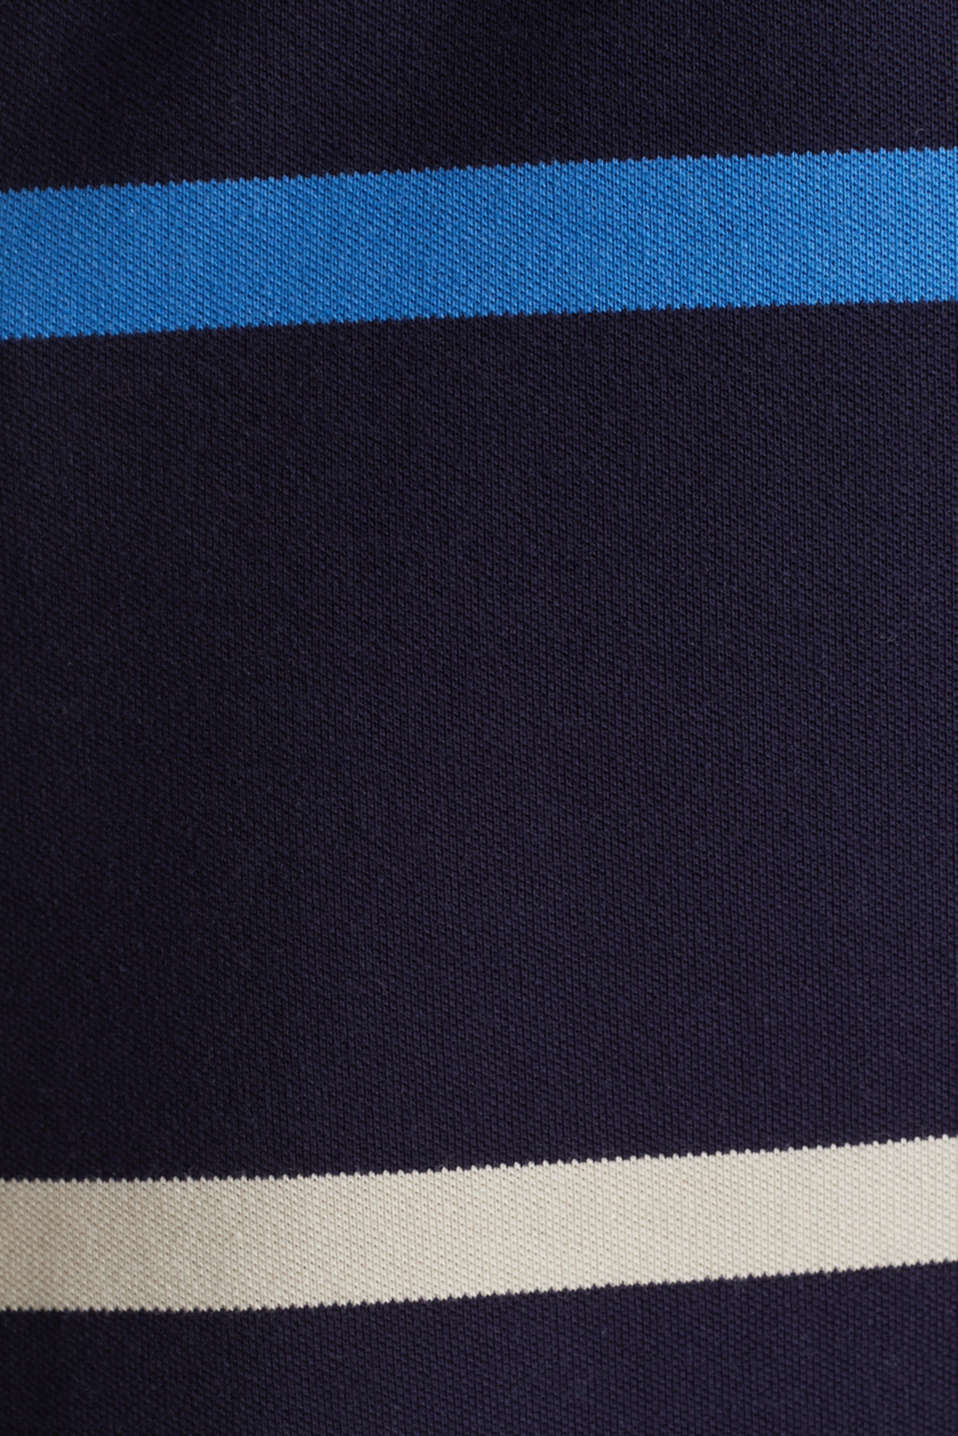 Striped polo dress in midi length, NAVY, detail image number 2